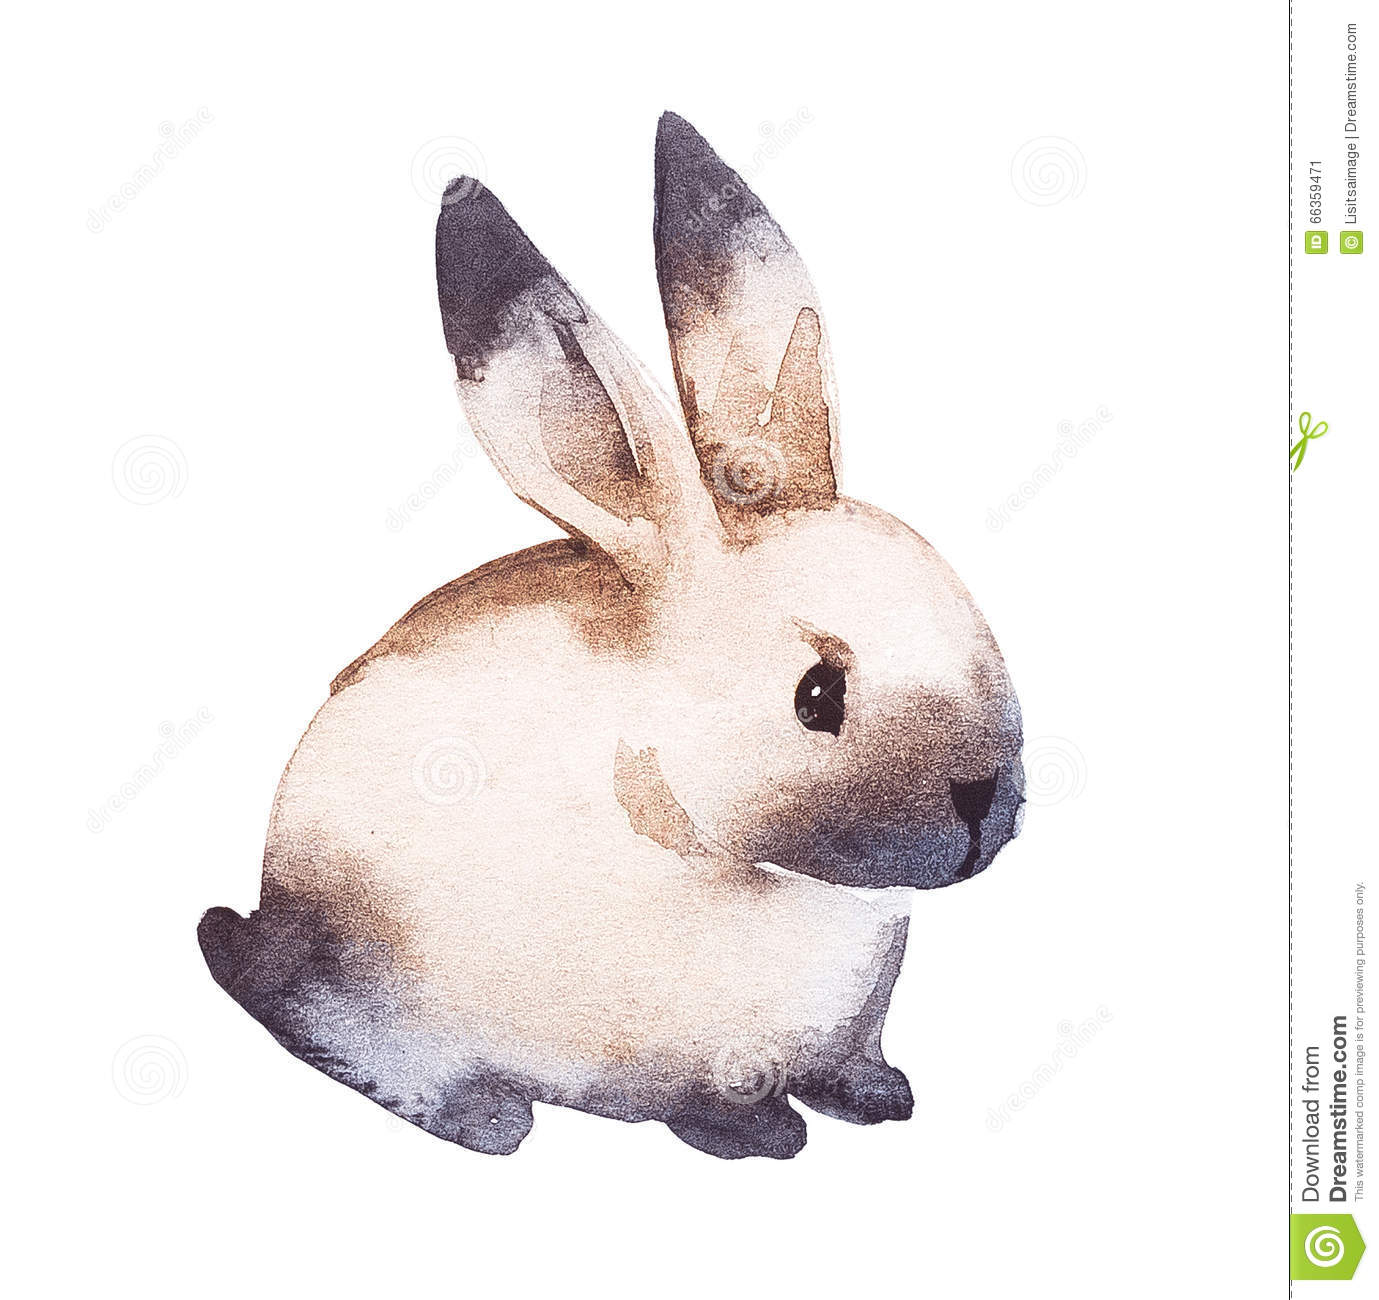 Lapin mignon illustration de dessin de main d 39 aquarelle illustration stock illustration du - Dessin lapin mignon ...